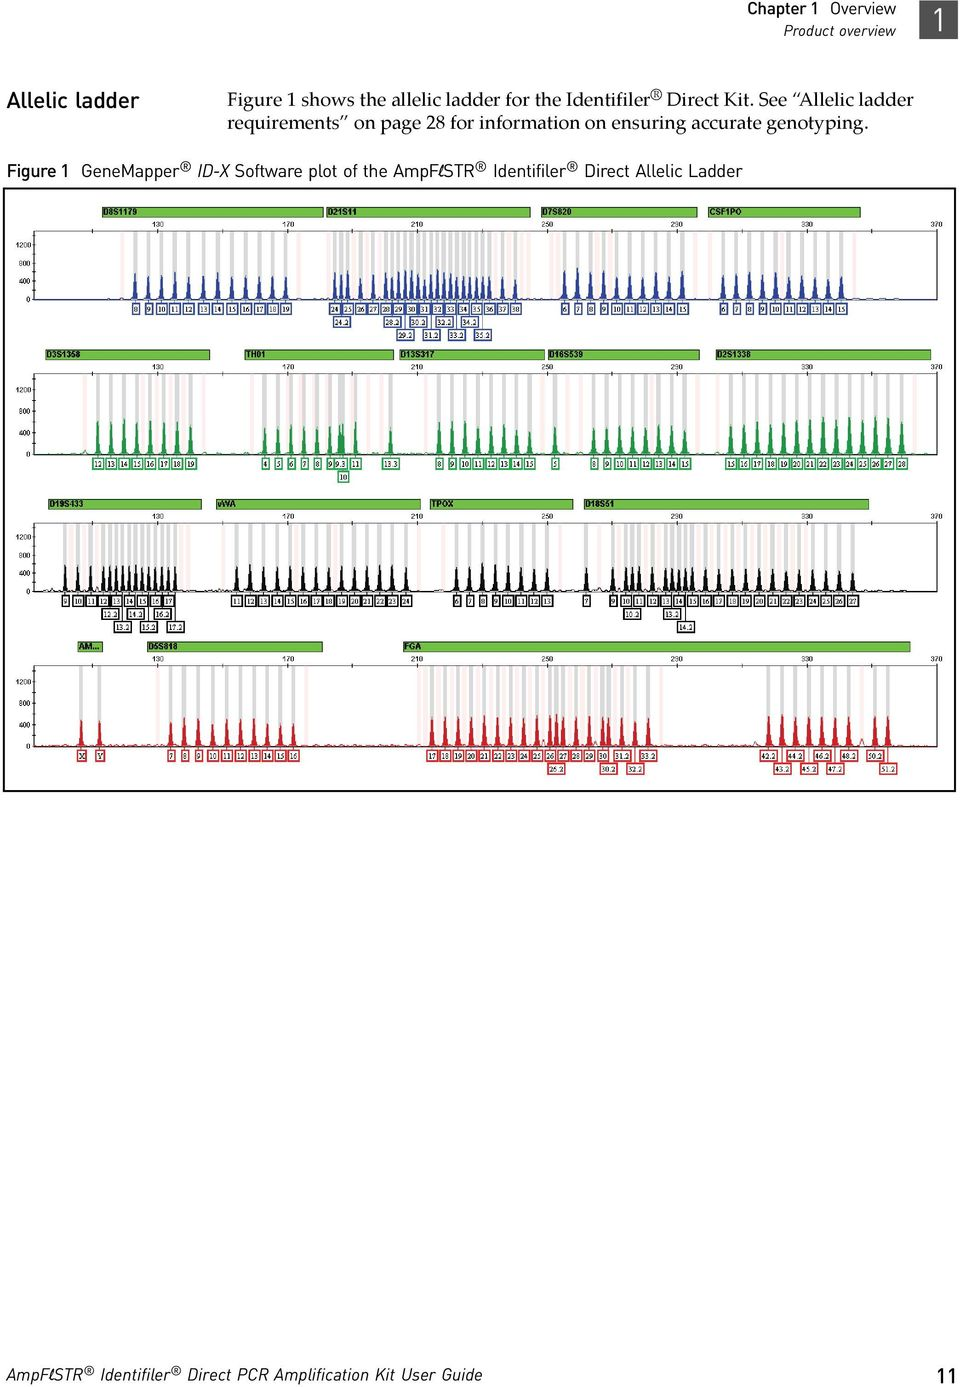 See Allelic ladder requirements on page 28 for information on ensuring accurate genotyping.